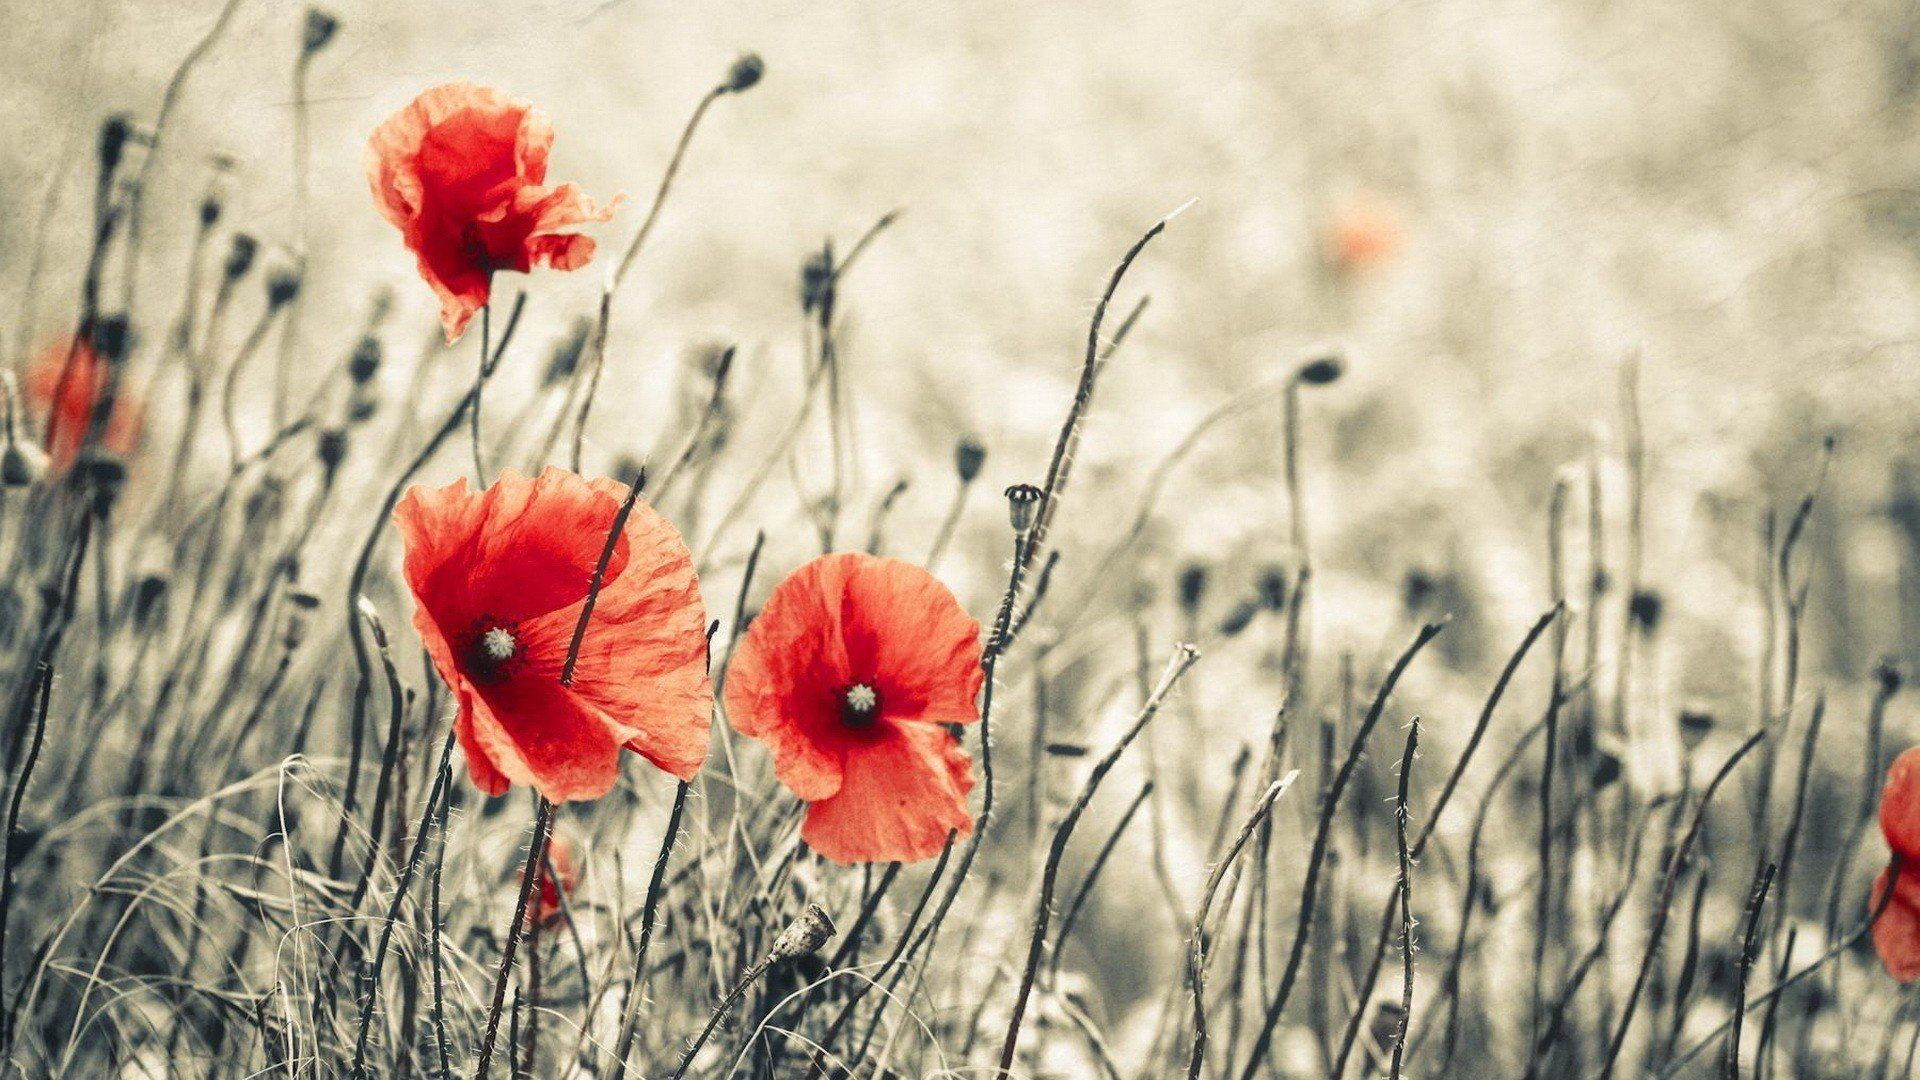 1920x1080 Awesome Poppy Wallpapers HDQ Cover Pictures BsnSCB